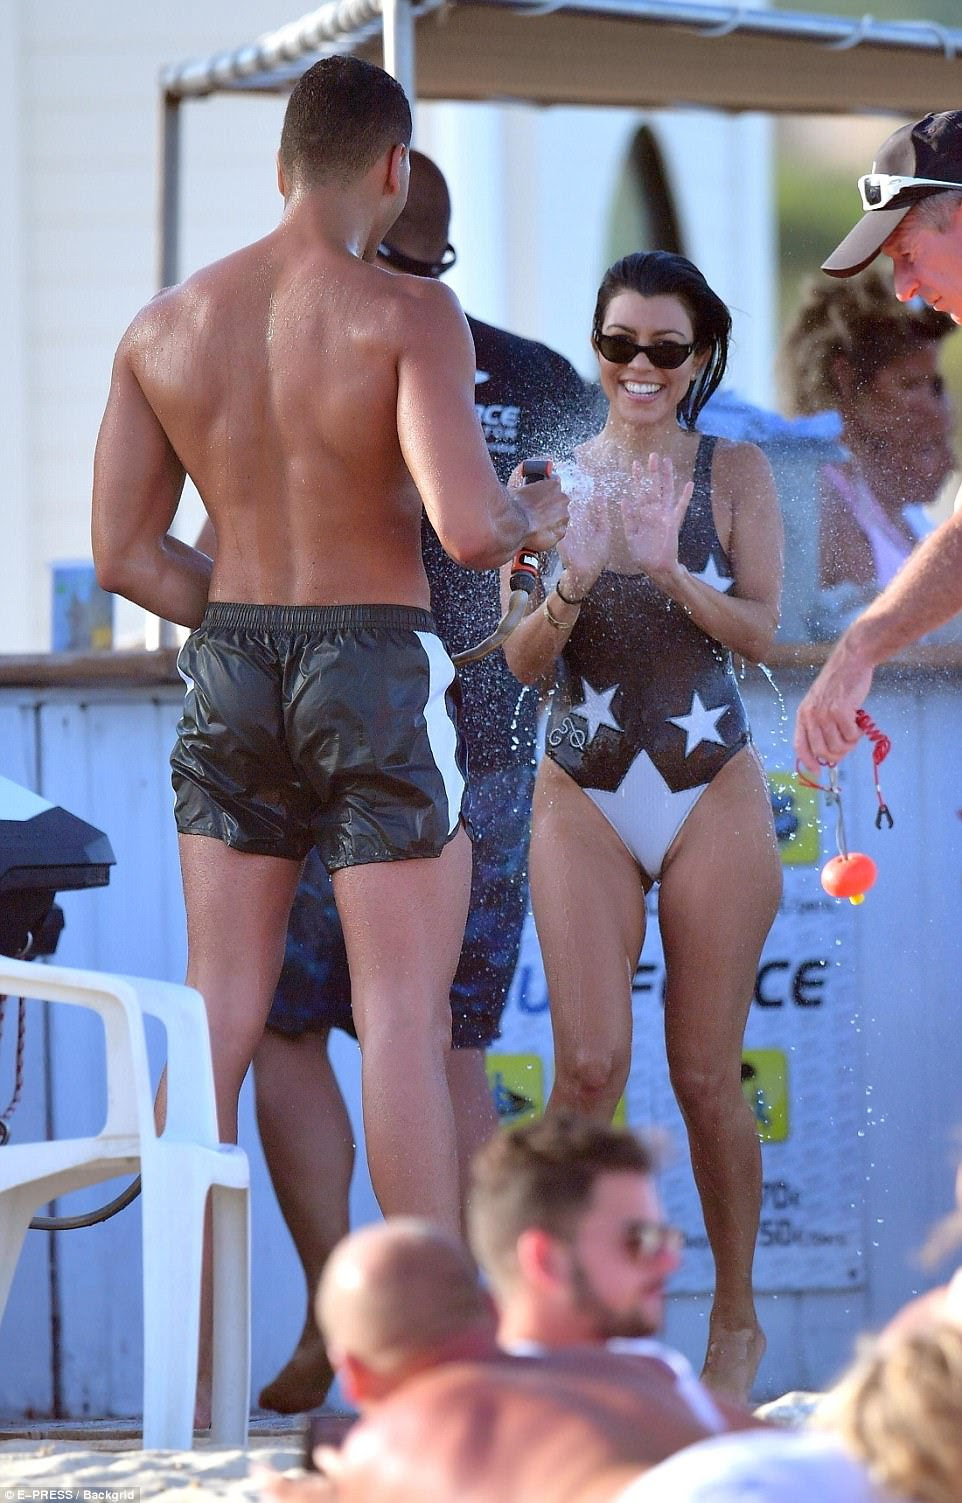 Cooling off: Kourtney Kardashian was hosed off by her boytoy Younes Bendjima during their holiday in St Tropez